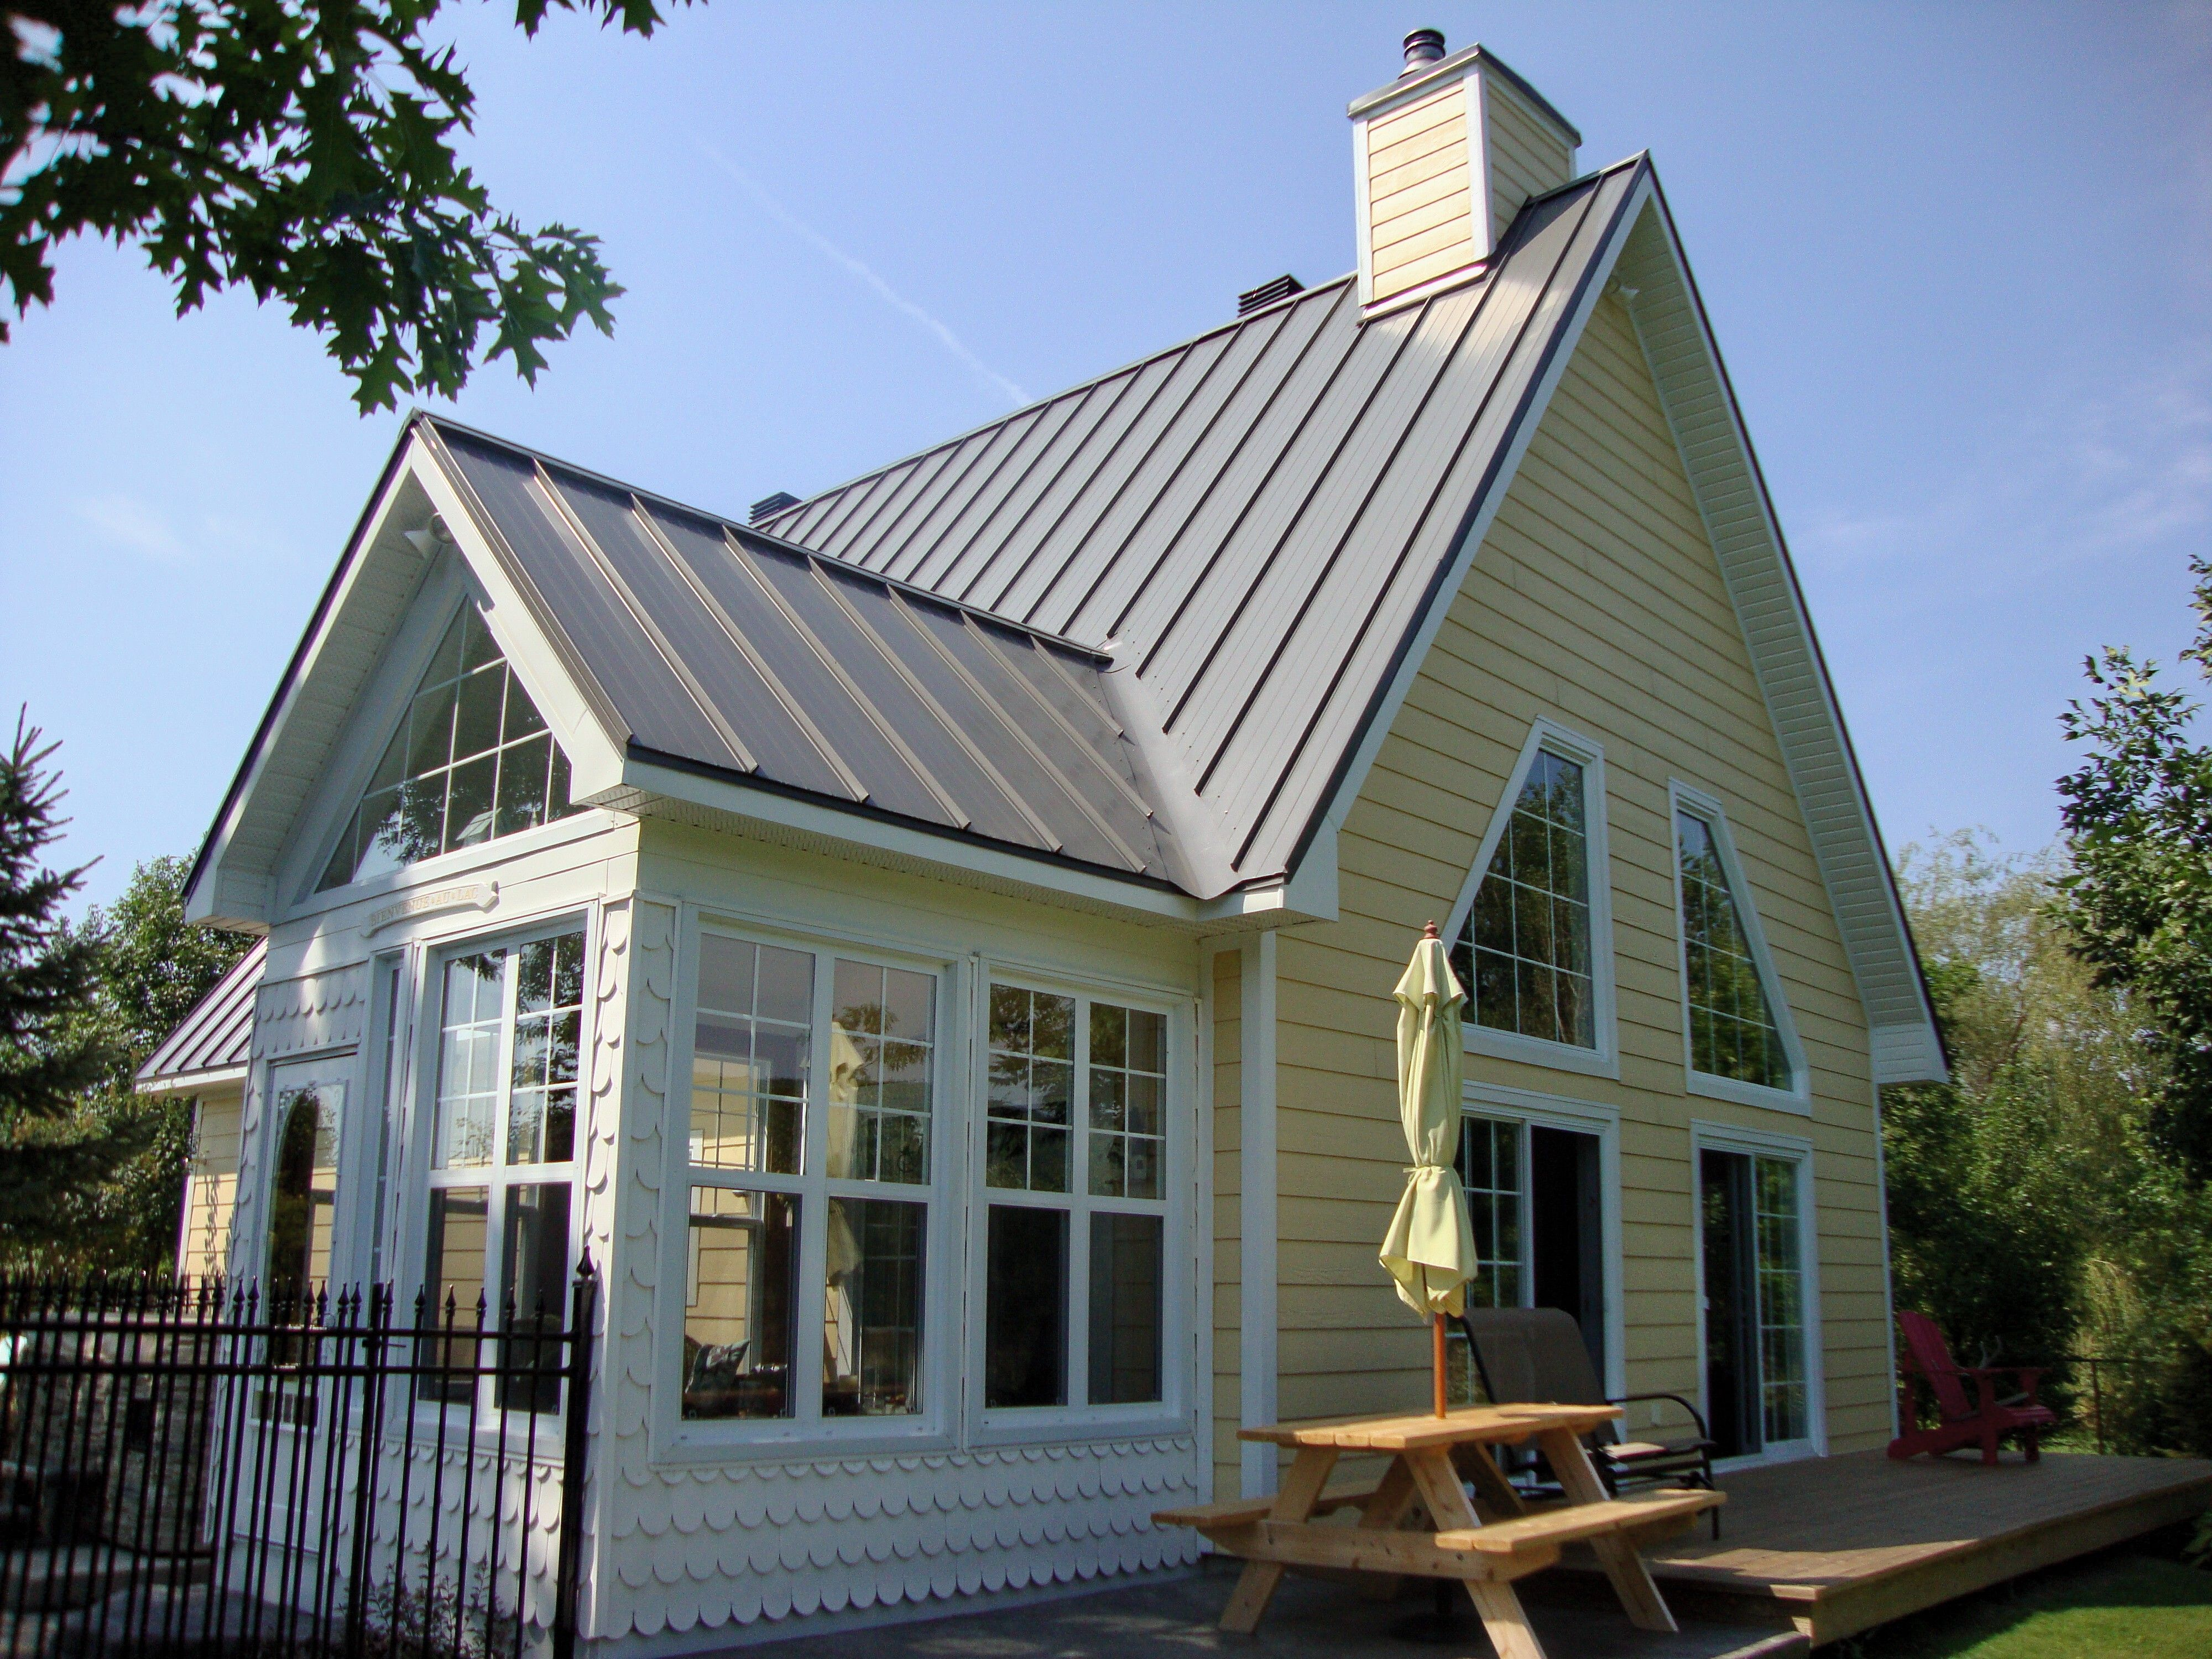 Pin By Barbara Smith On H F 20 25 H F 16 Residential Steel Roofing Roof Styles Roof Design